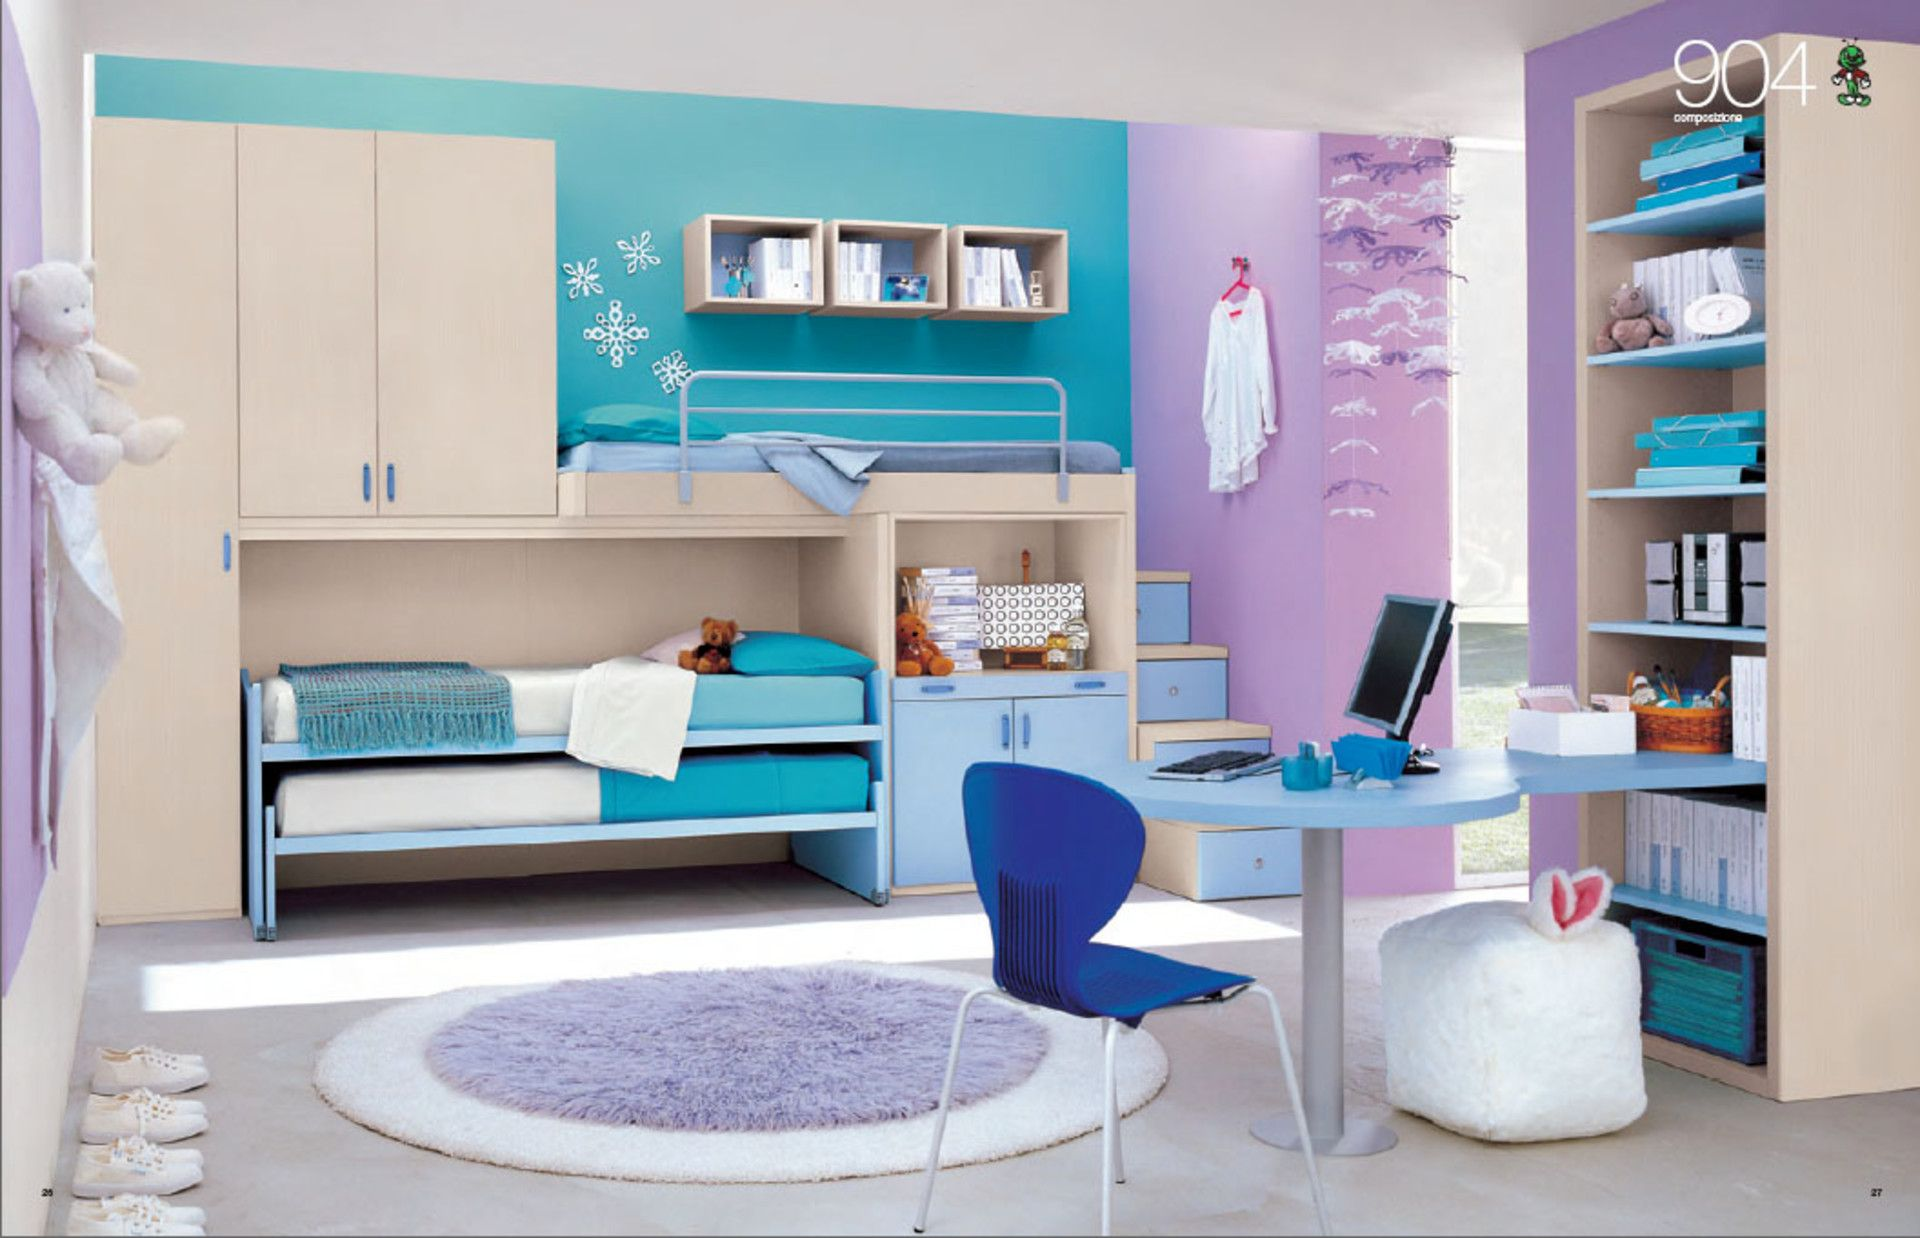 Exquisite Purple And Blue Themed Bedroom With Adjoining Wardrobe